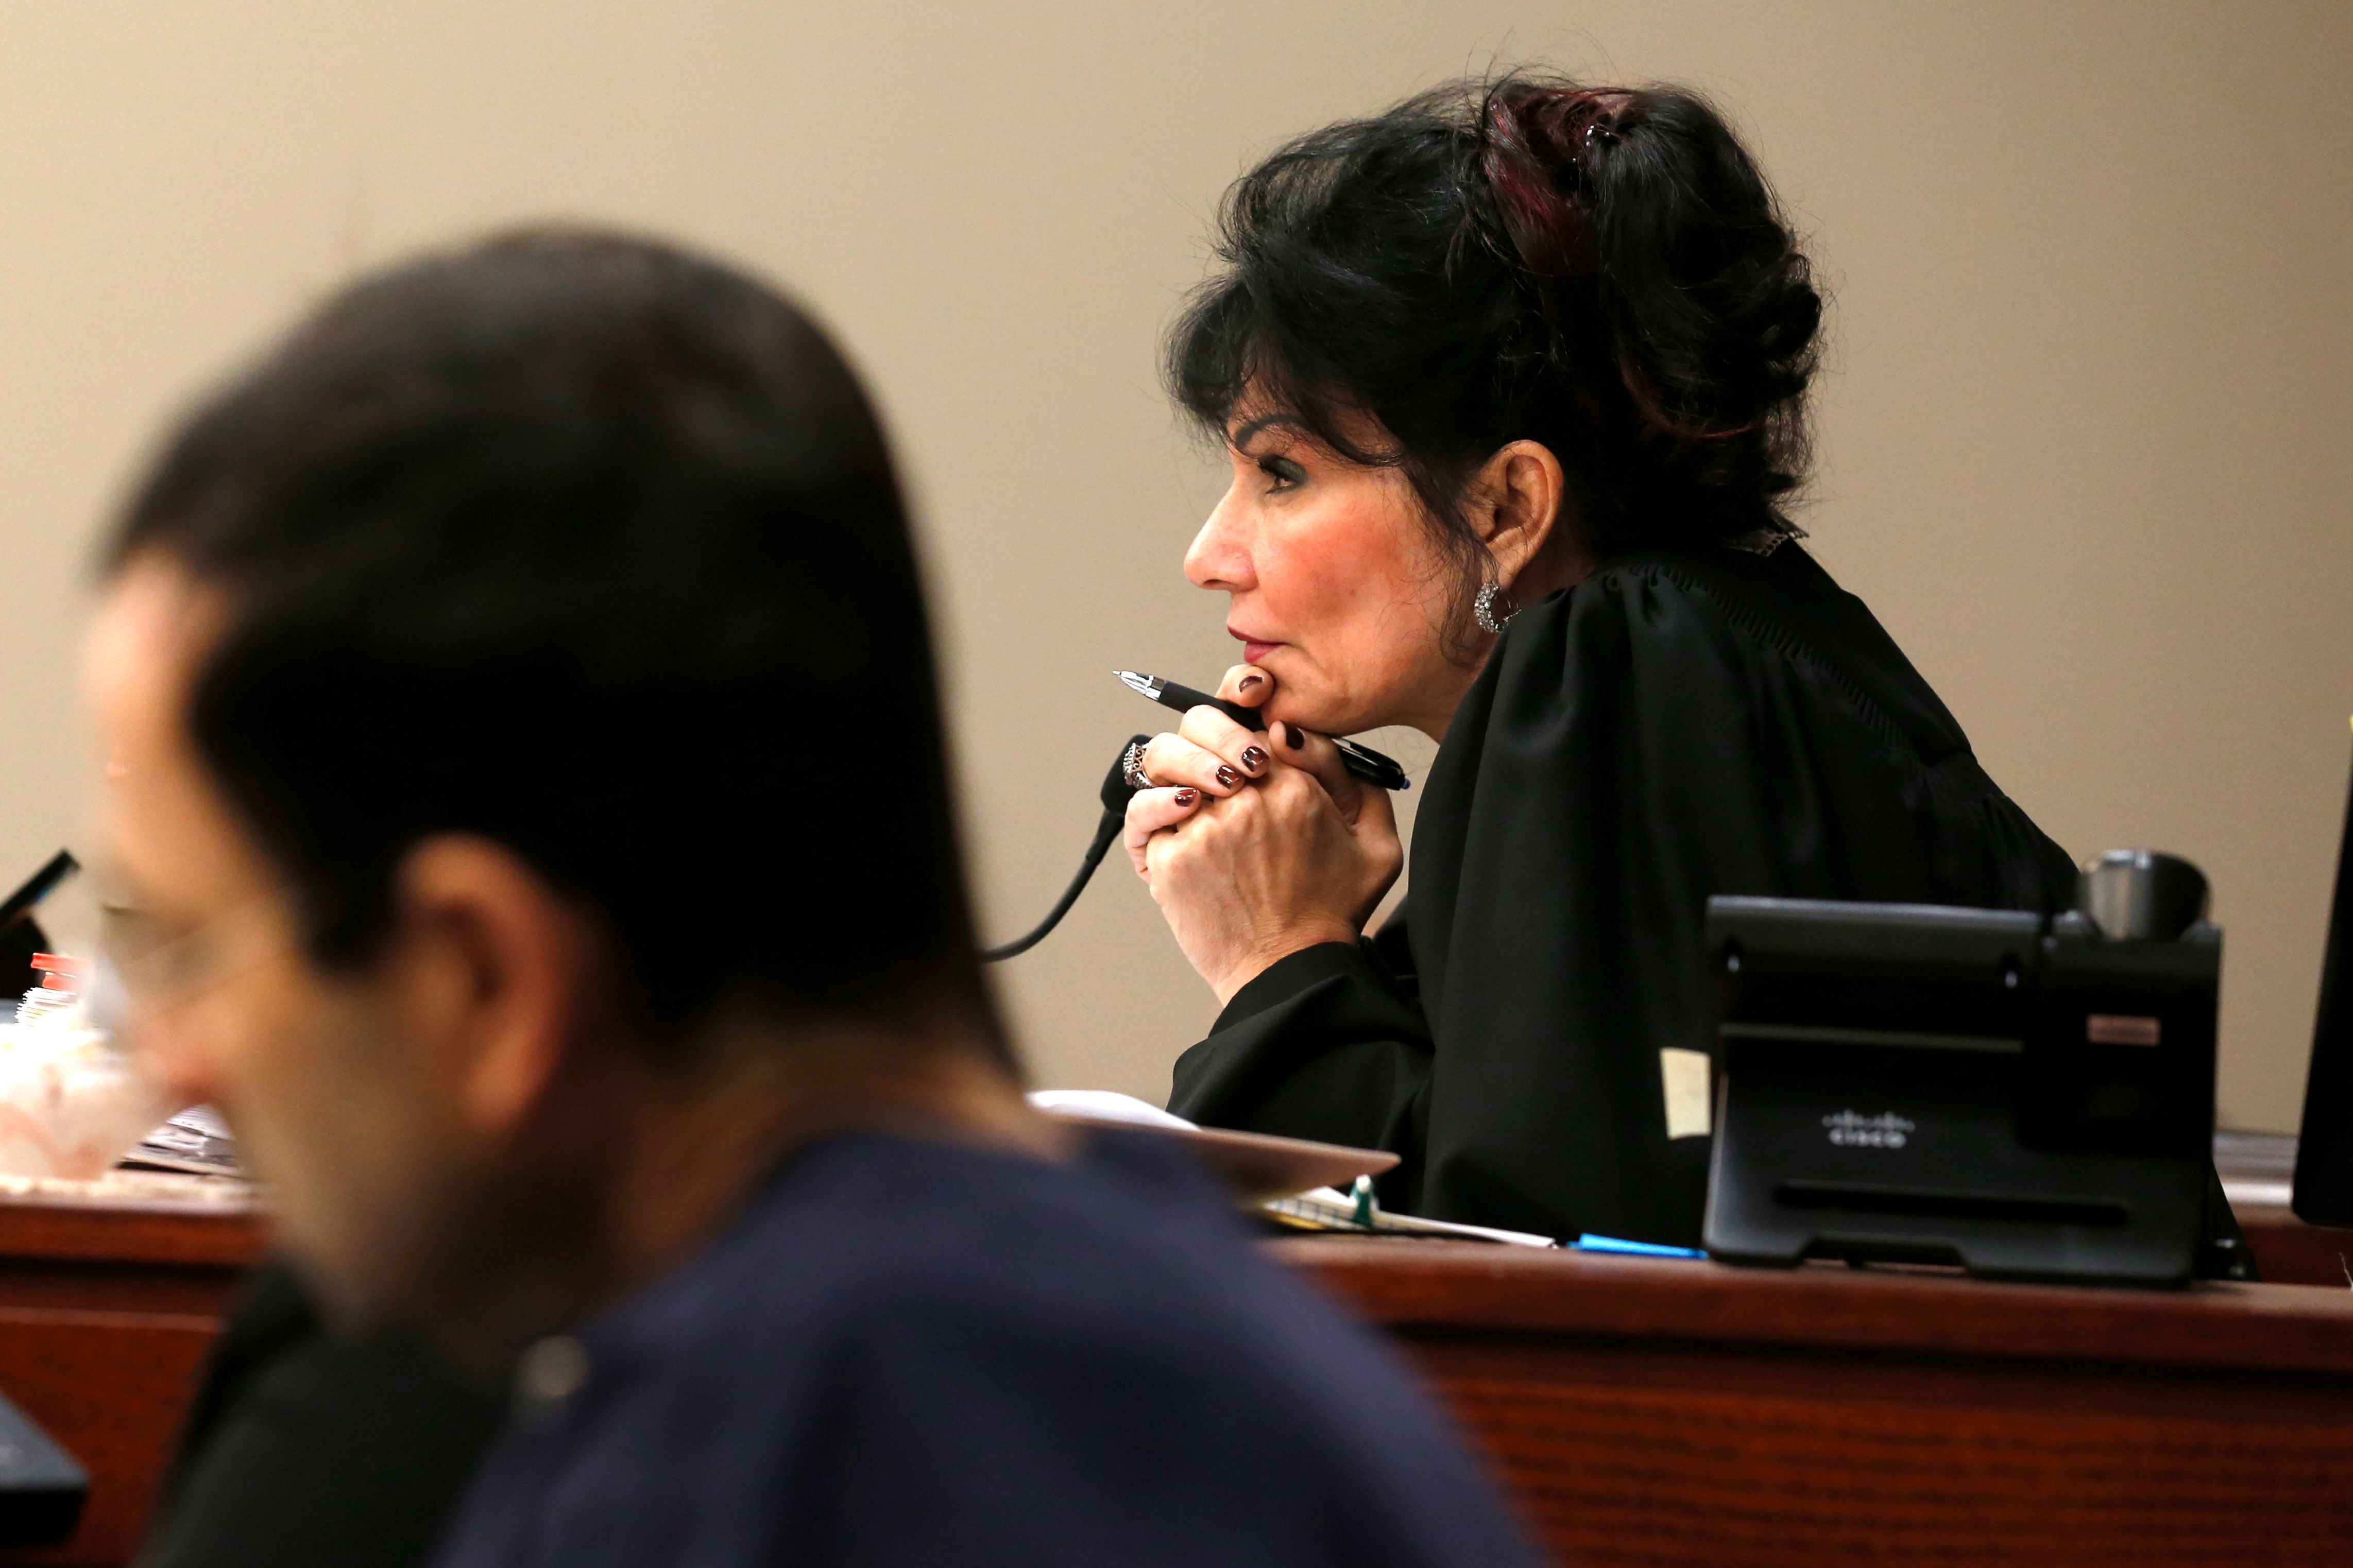 Judge Rosemarie Aquilina watches as Former Michigan State University and USA Gymnastics doctor Larry Nassar listens to impact statements during the sentencing phase in Ingham County Circuit Court on January 24, 2018 in Lansing, Michigan. More than 100 women and girls accuse Nassar of a pattern of serial abuse dating back two decades, including the Olympic gold-medal winners Simone Biles, Aly Raisman, Gabby Douglas and McKayla Maroney -- who have lashed out at top sporting officials for failing to stop him.    / AFP PHOTO / JEFF KOWALSKY        (Photo credit should read JEFF KOWALSKY/AFP/Getty Images)